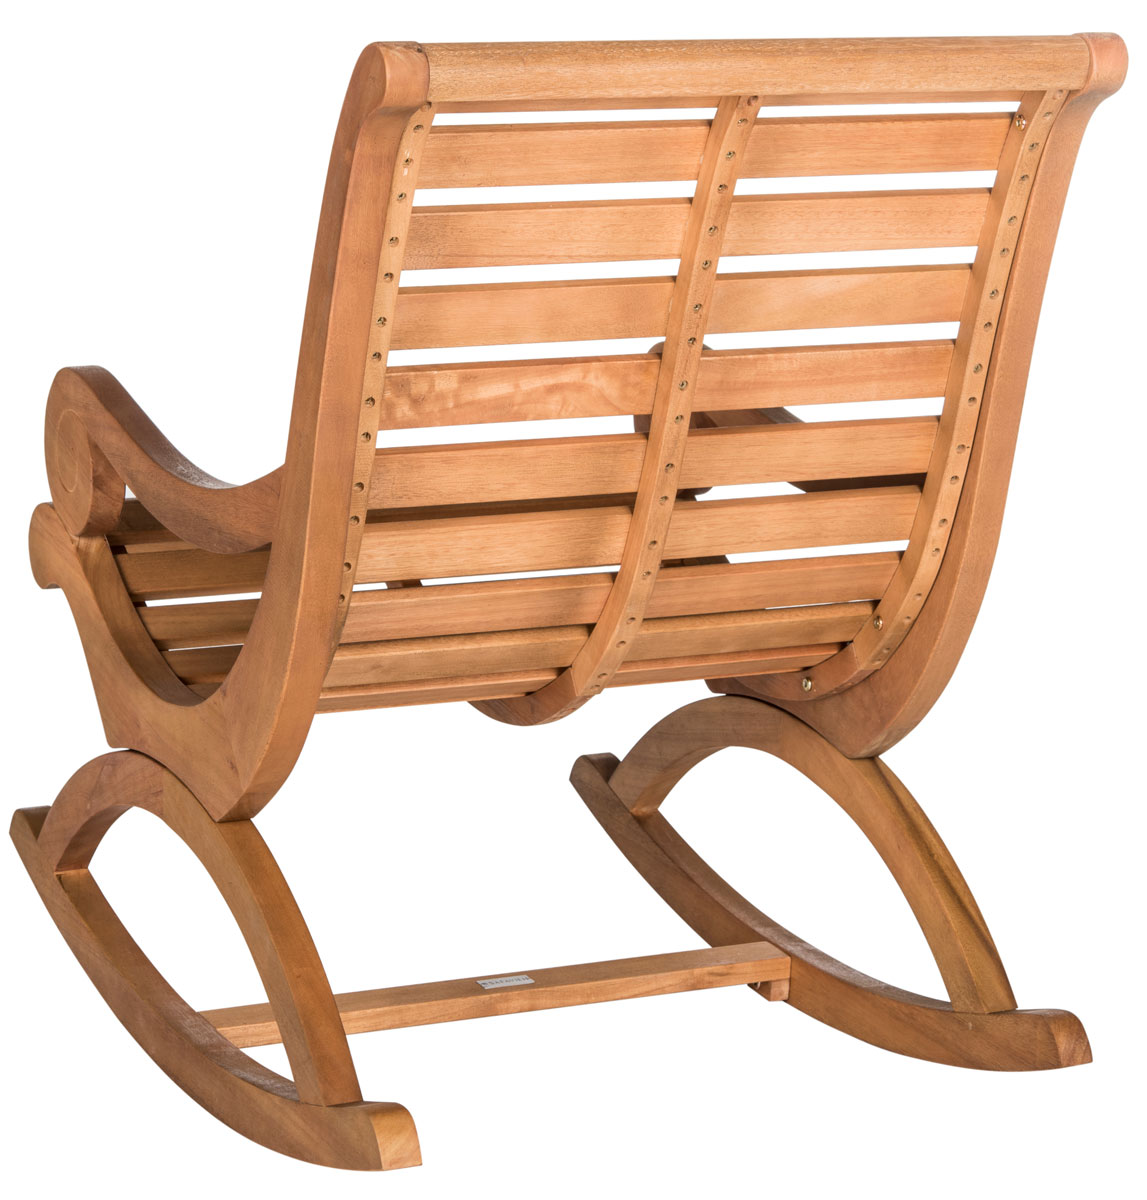 High Quality ROCKING CHAIRS